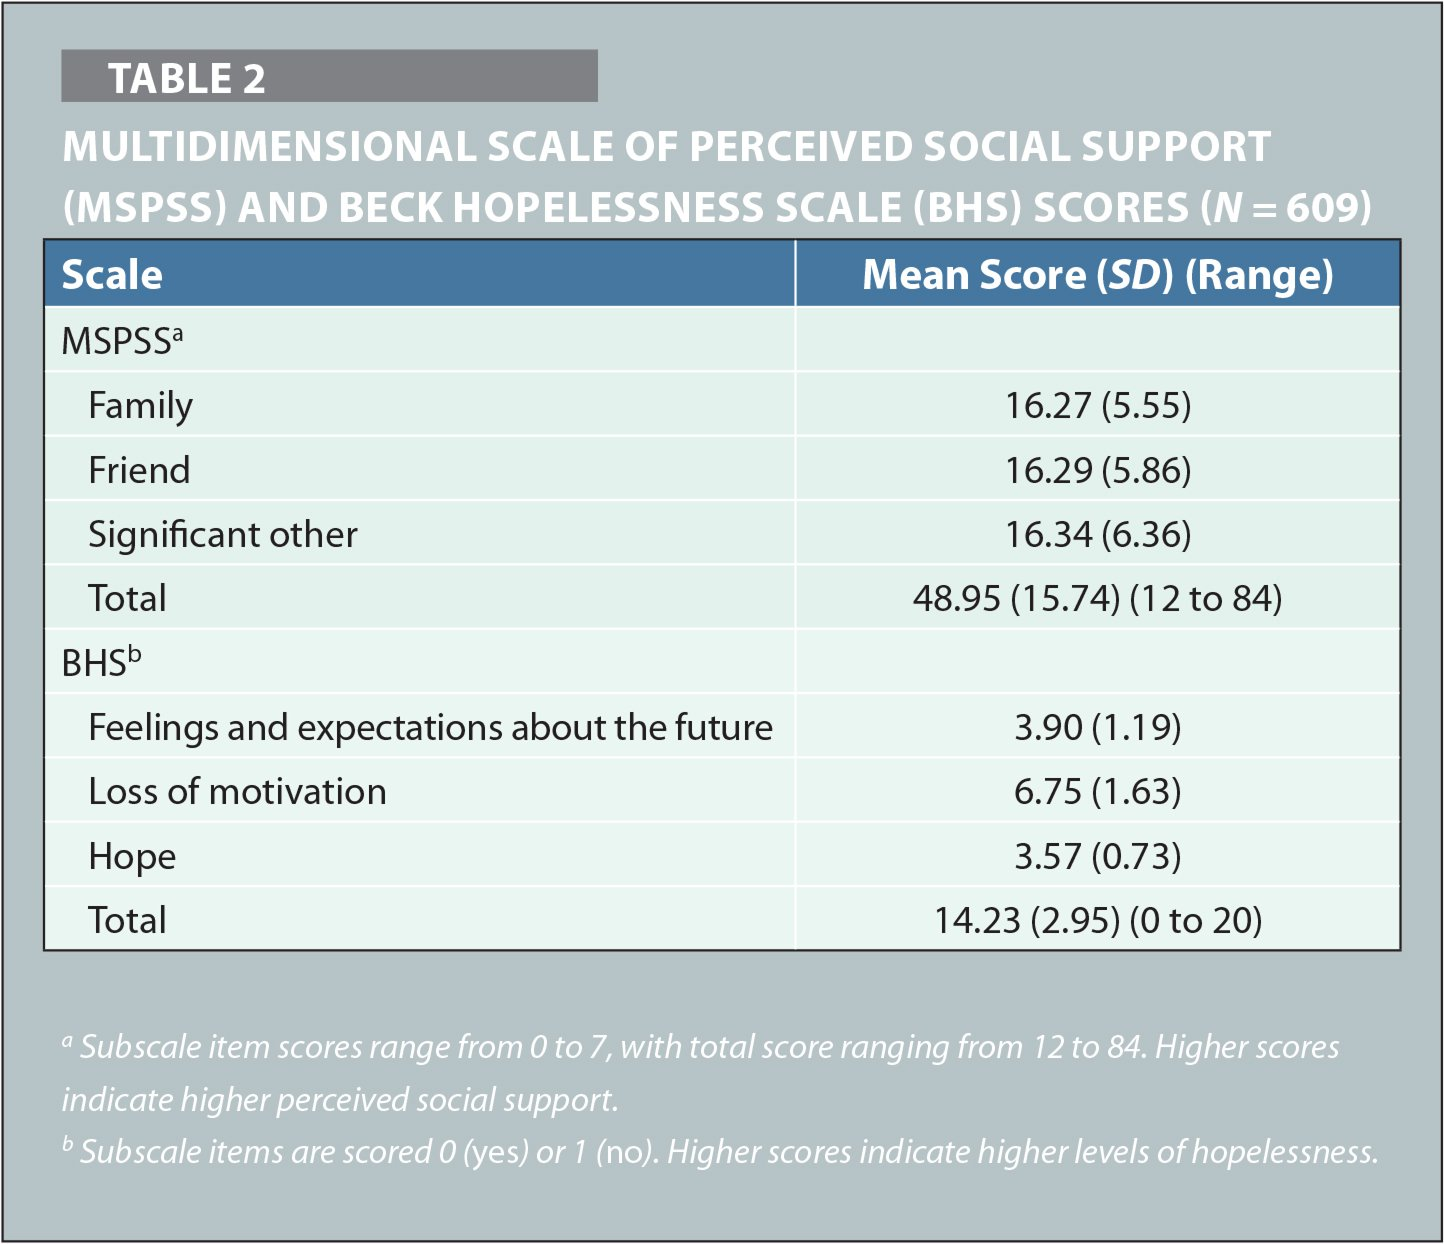 Multidimensional Scale of Perceived Social Support (MSPSS) and Beck Hopelessness Scale (BHS) Scores (N = 609)